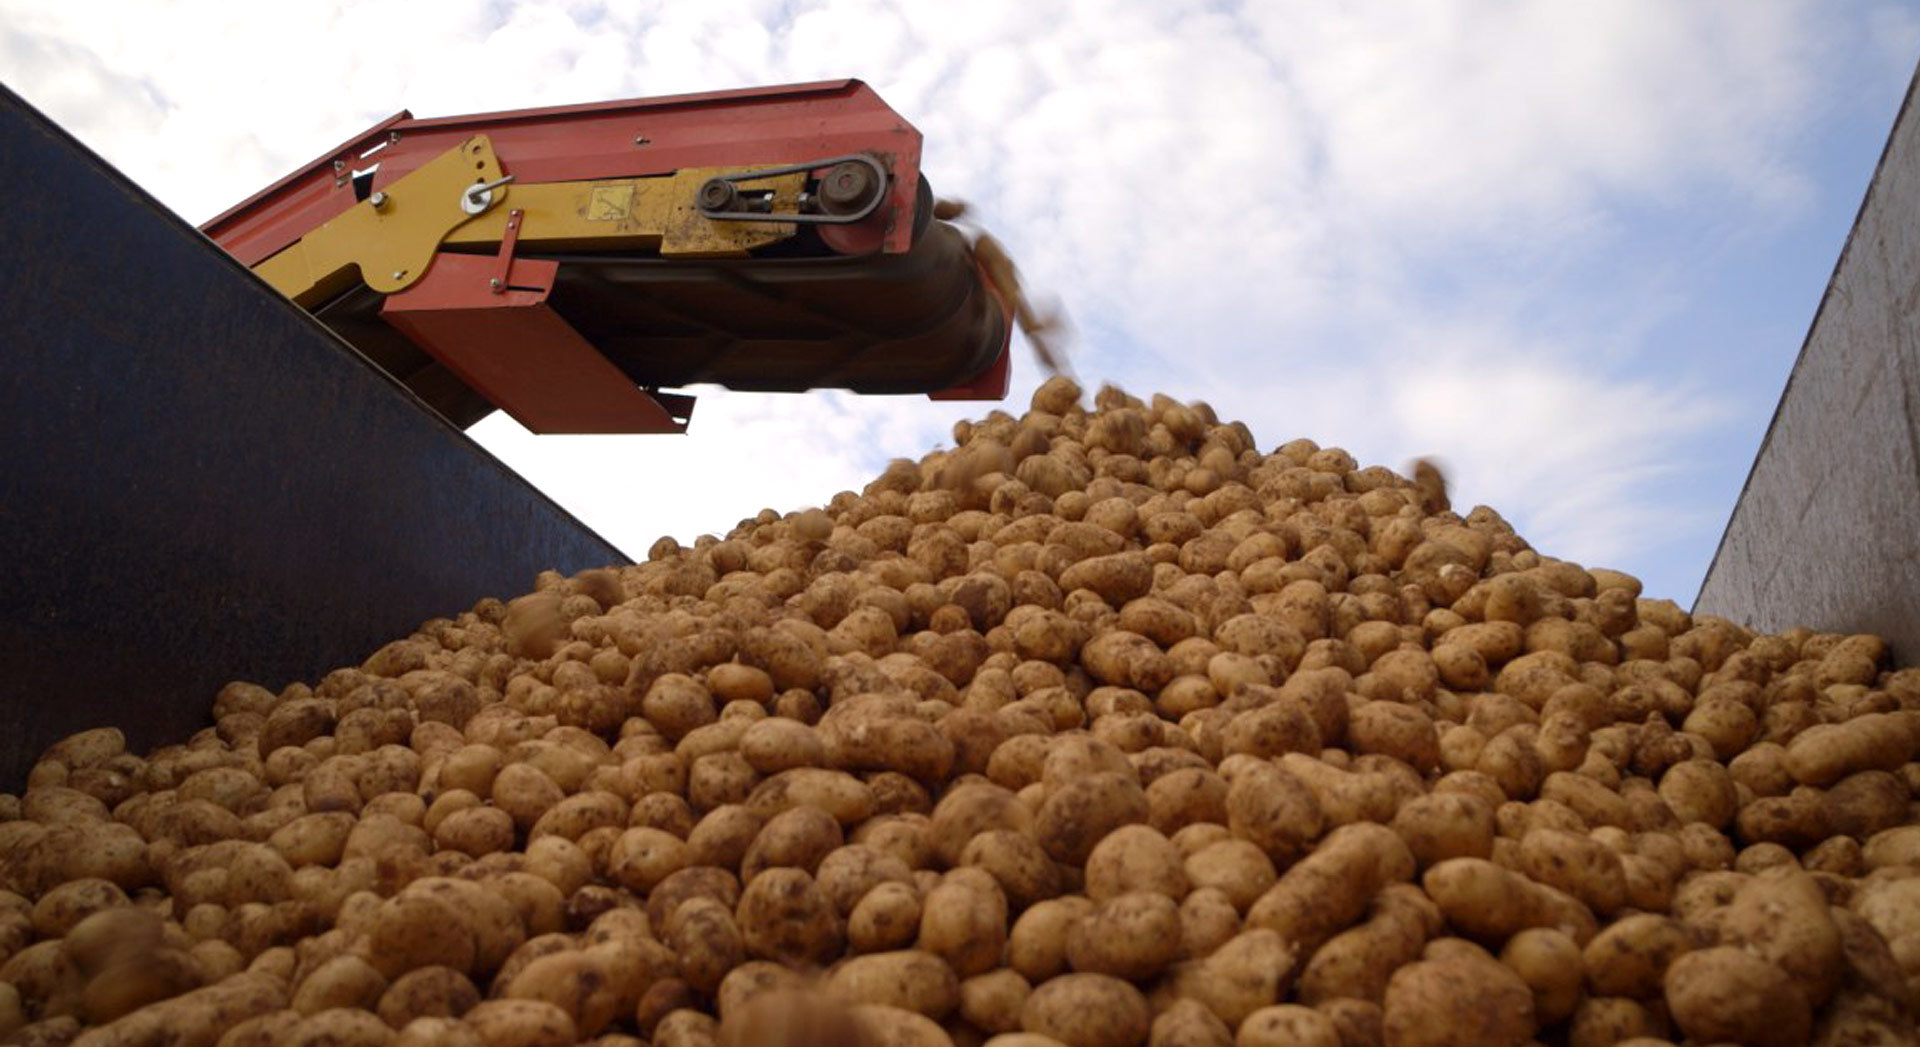 Know Our Food - Is it true that McDonald's potato supplier provides genetically modified potatoes?